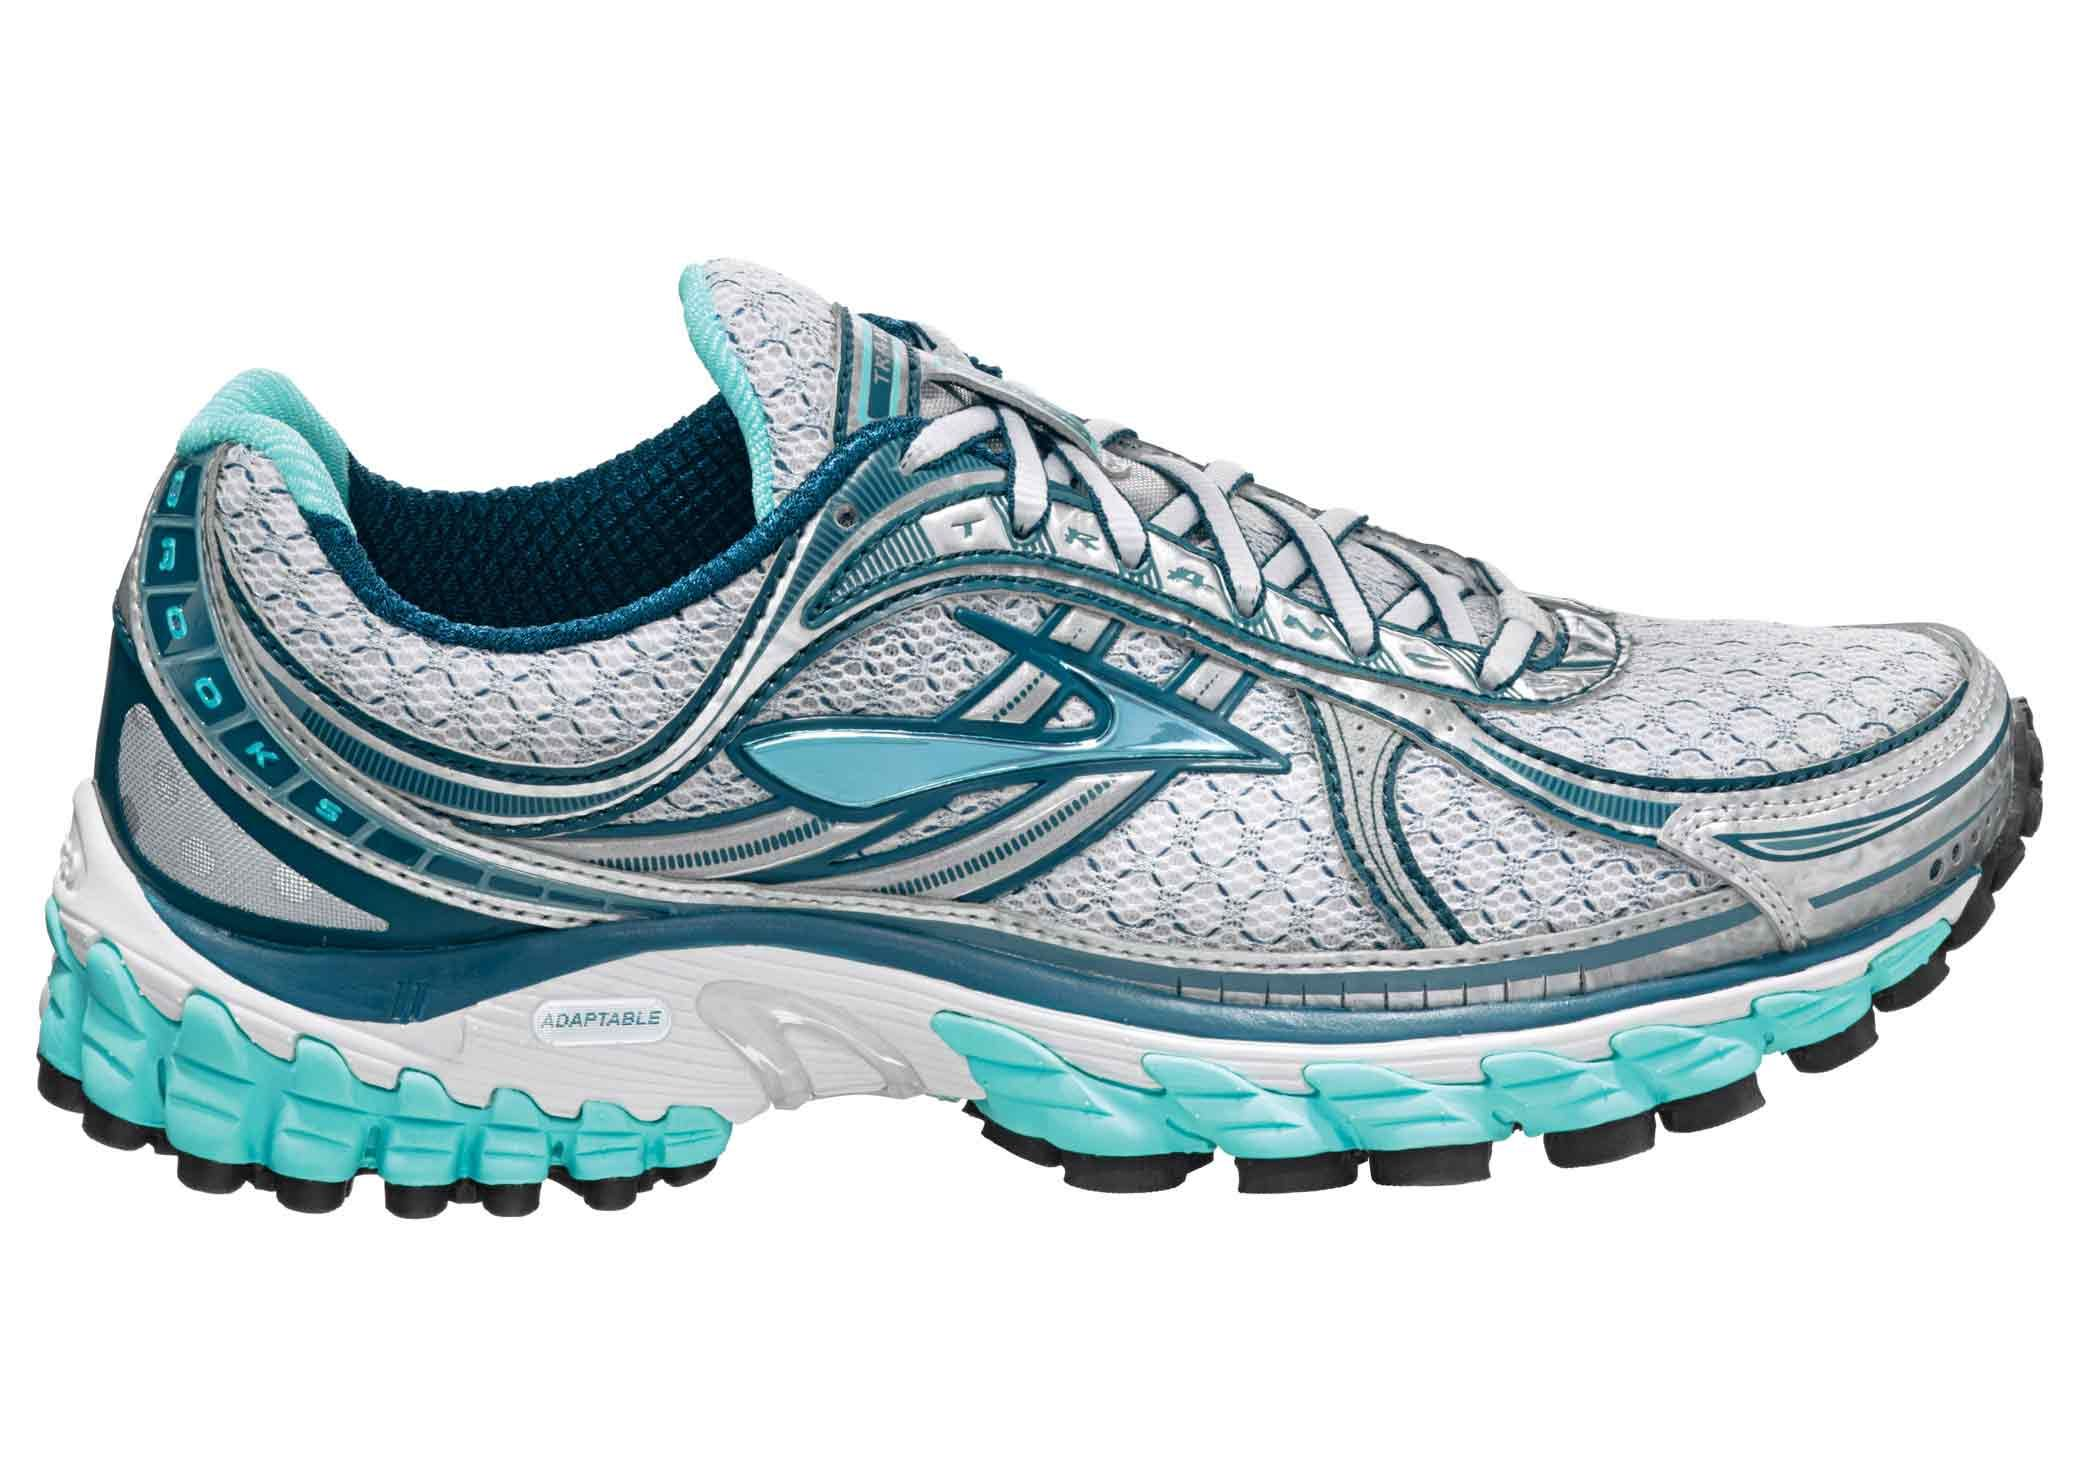 63462c878fbb Brooks Trance 11 women s running shoe with full-length Brooks DNA ...